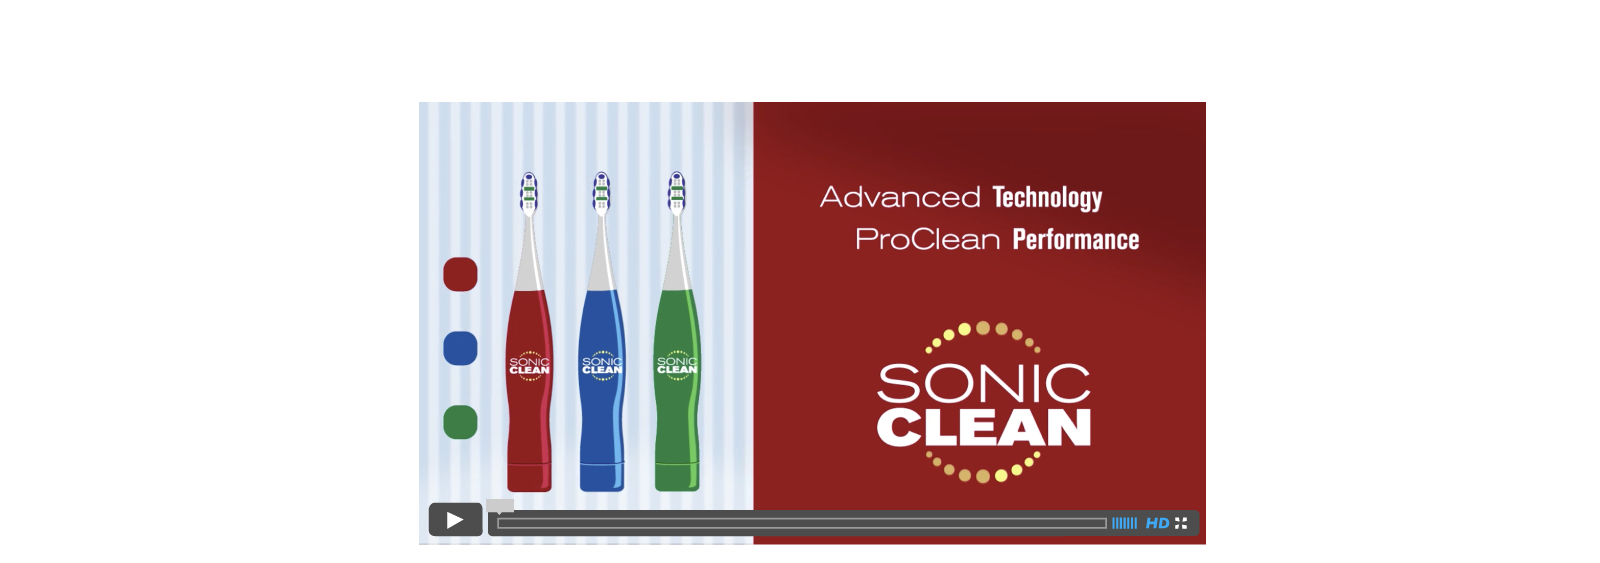 Sonic Clean